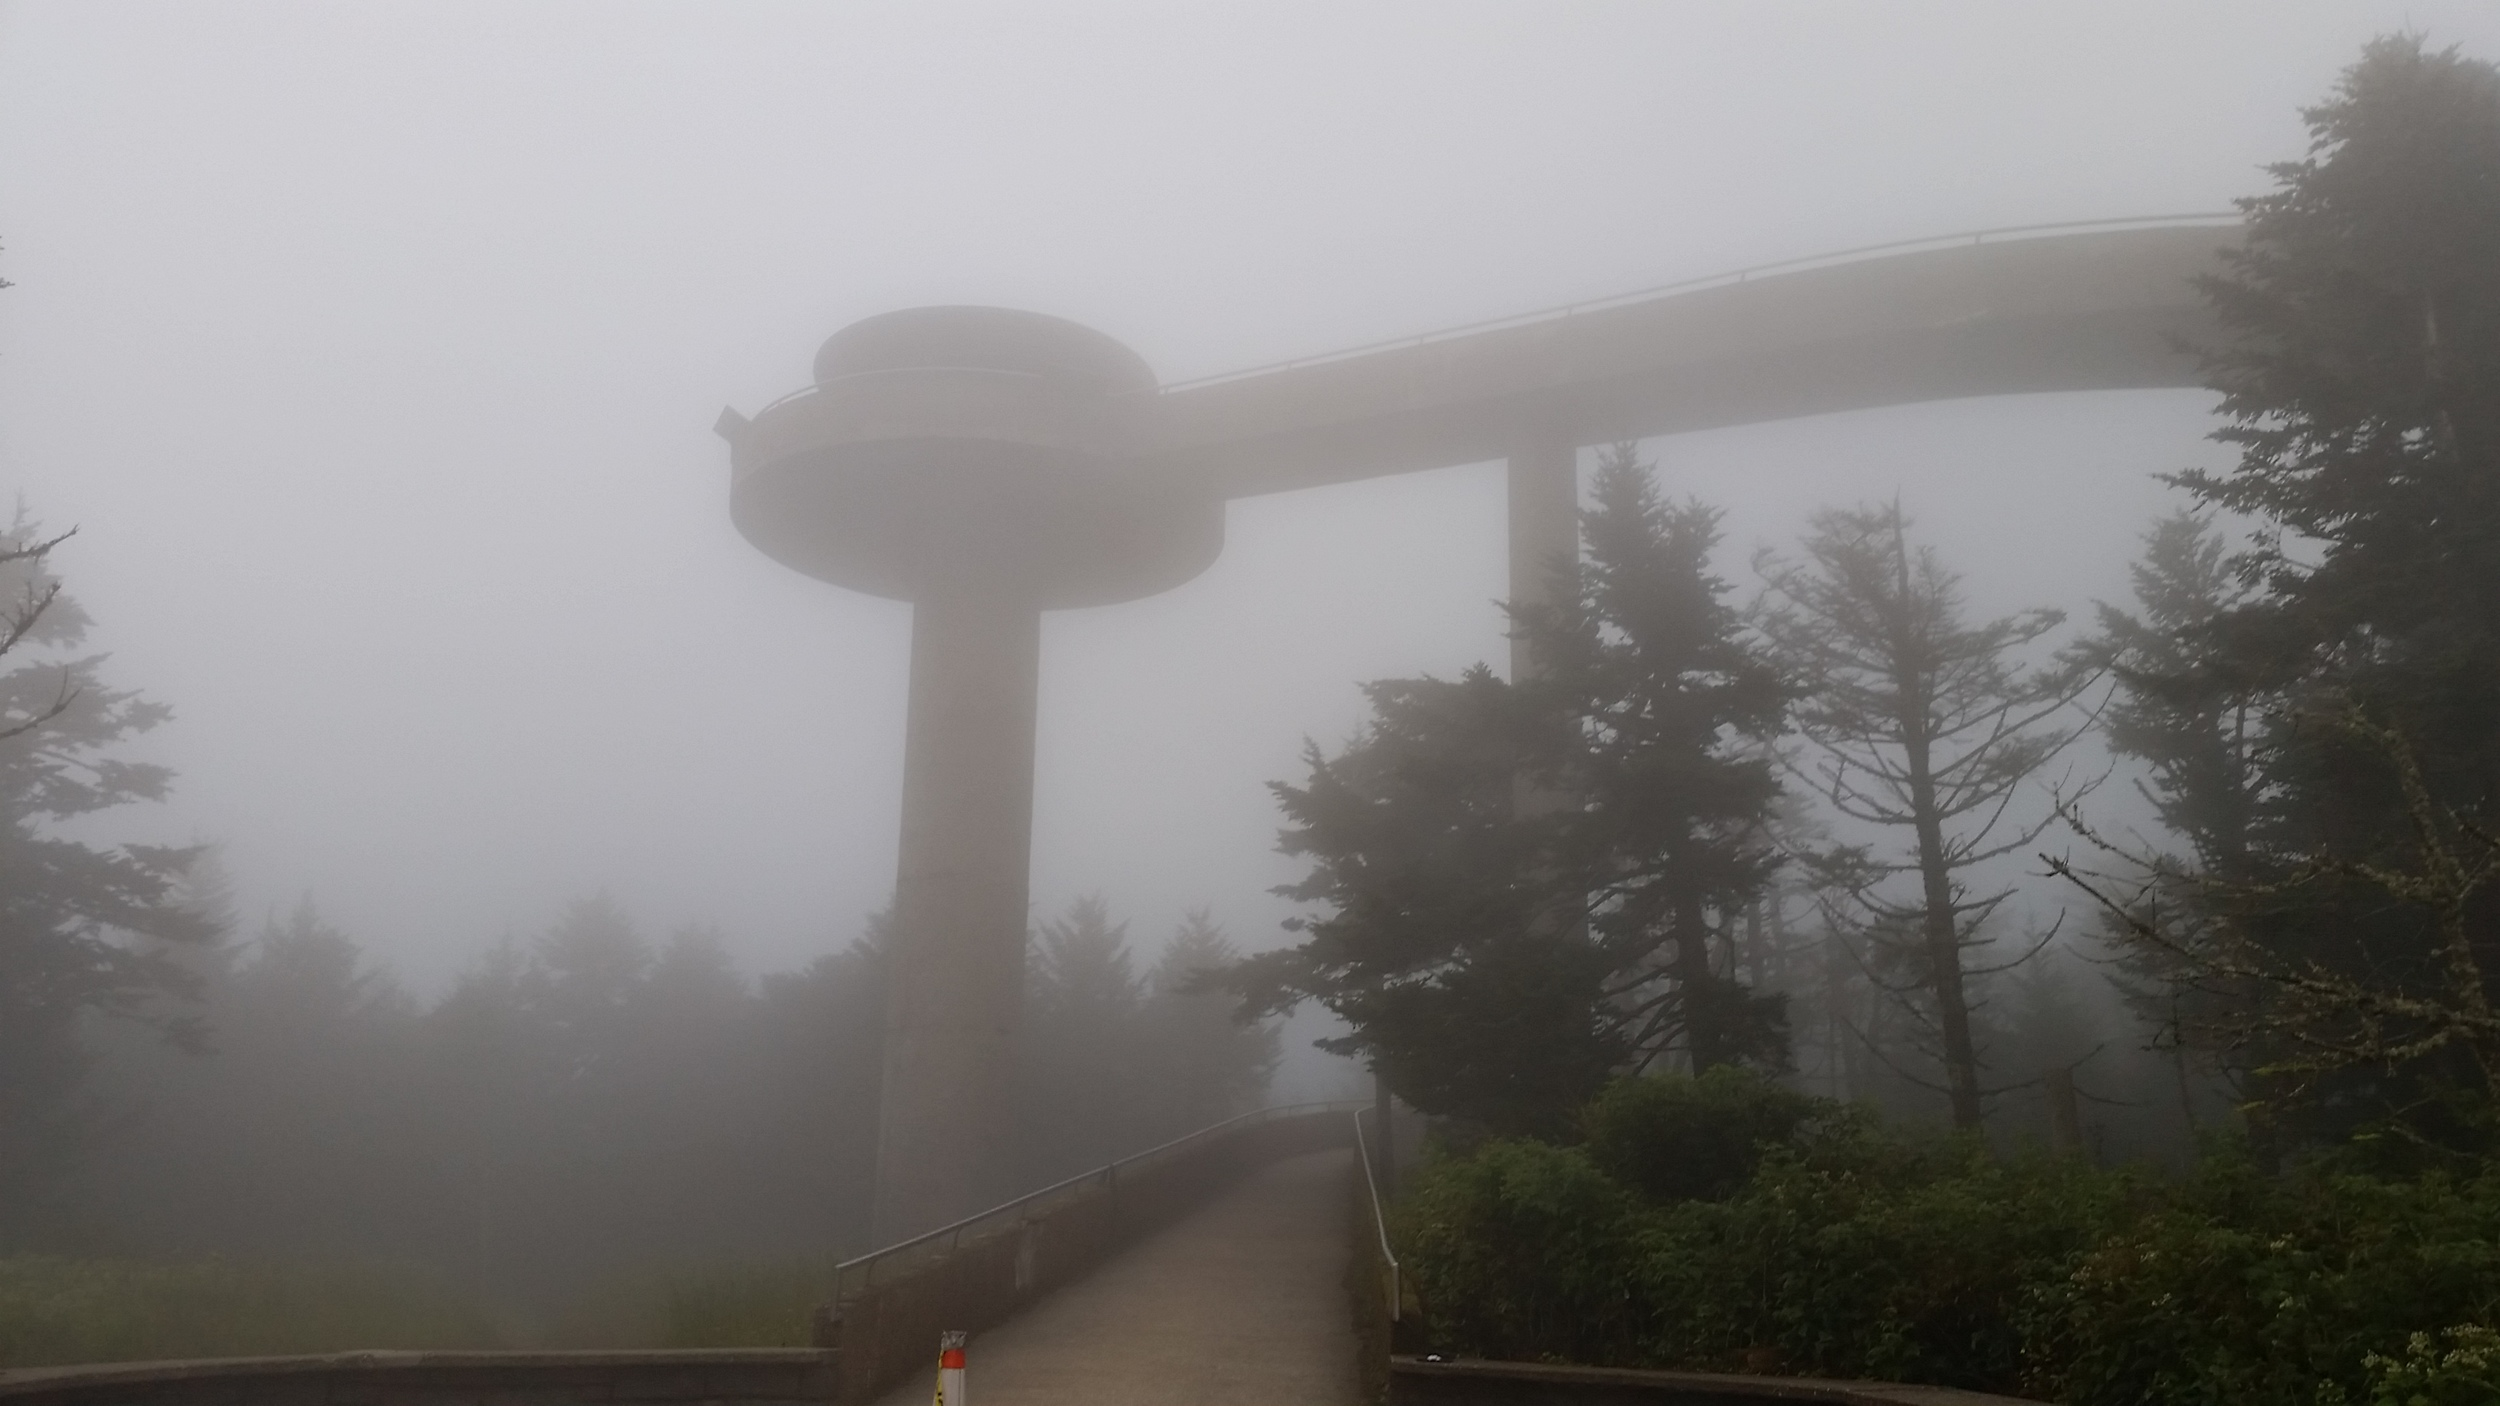 Another view of Clingman's Dome from the ground.